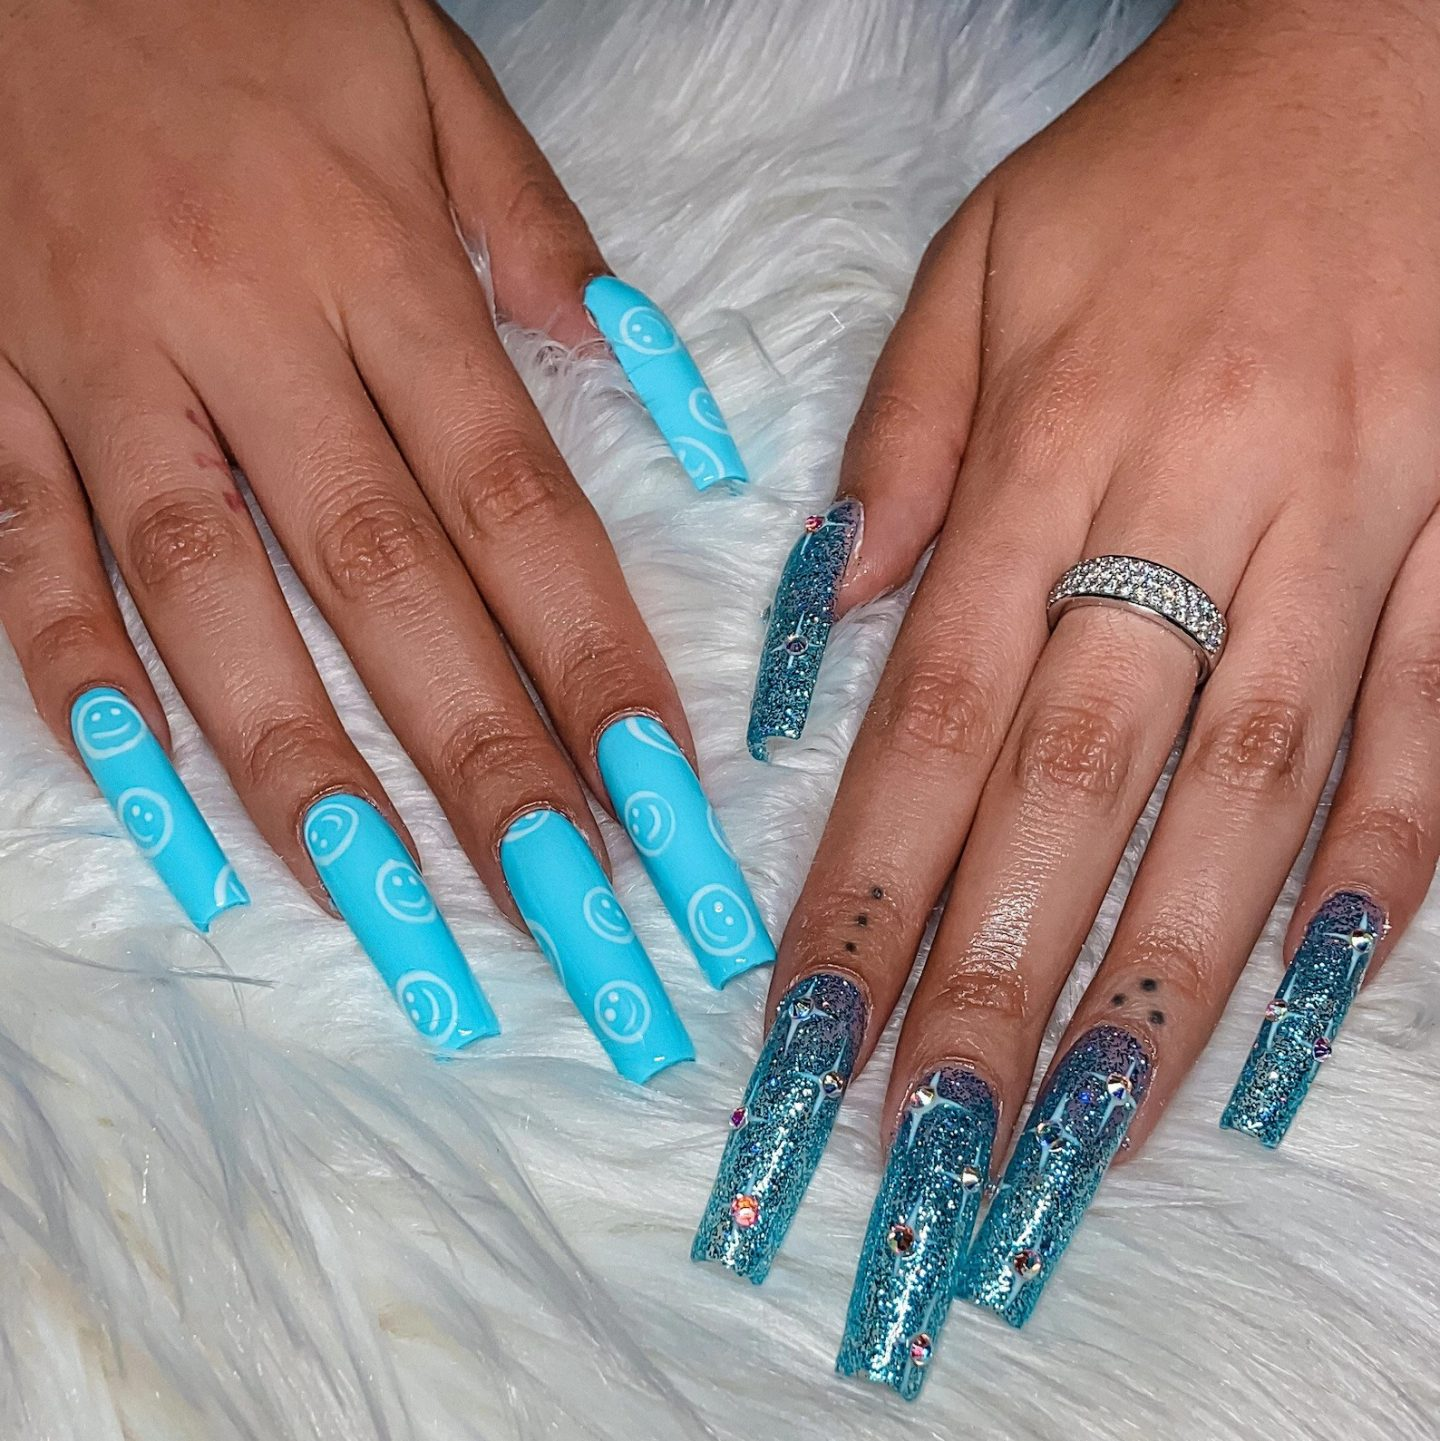 Icy blue coffin nails with smiley faces